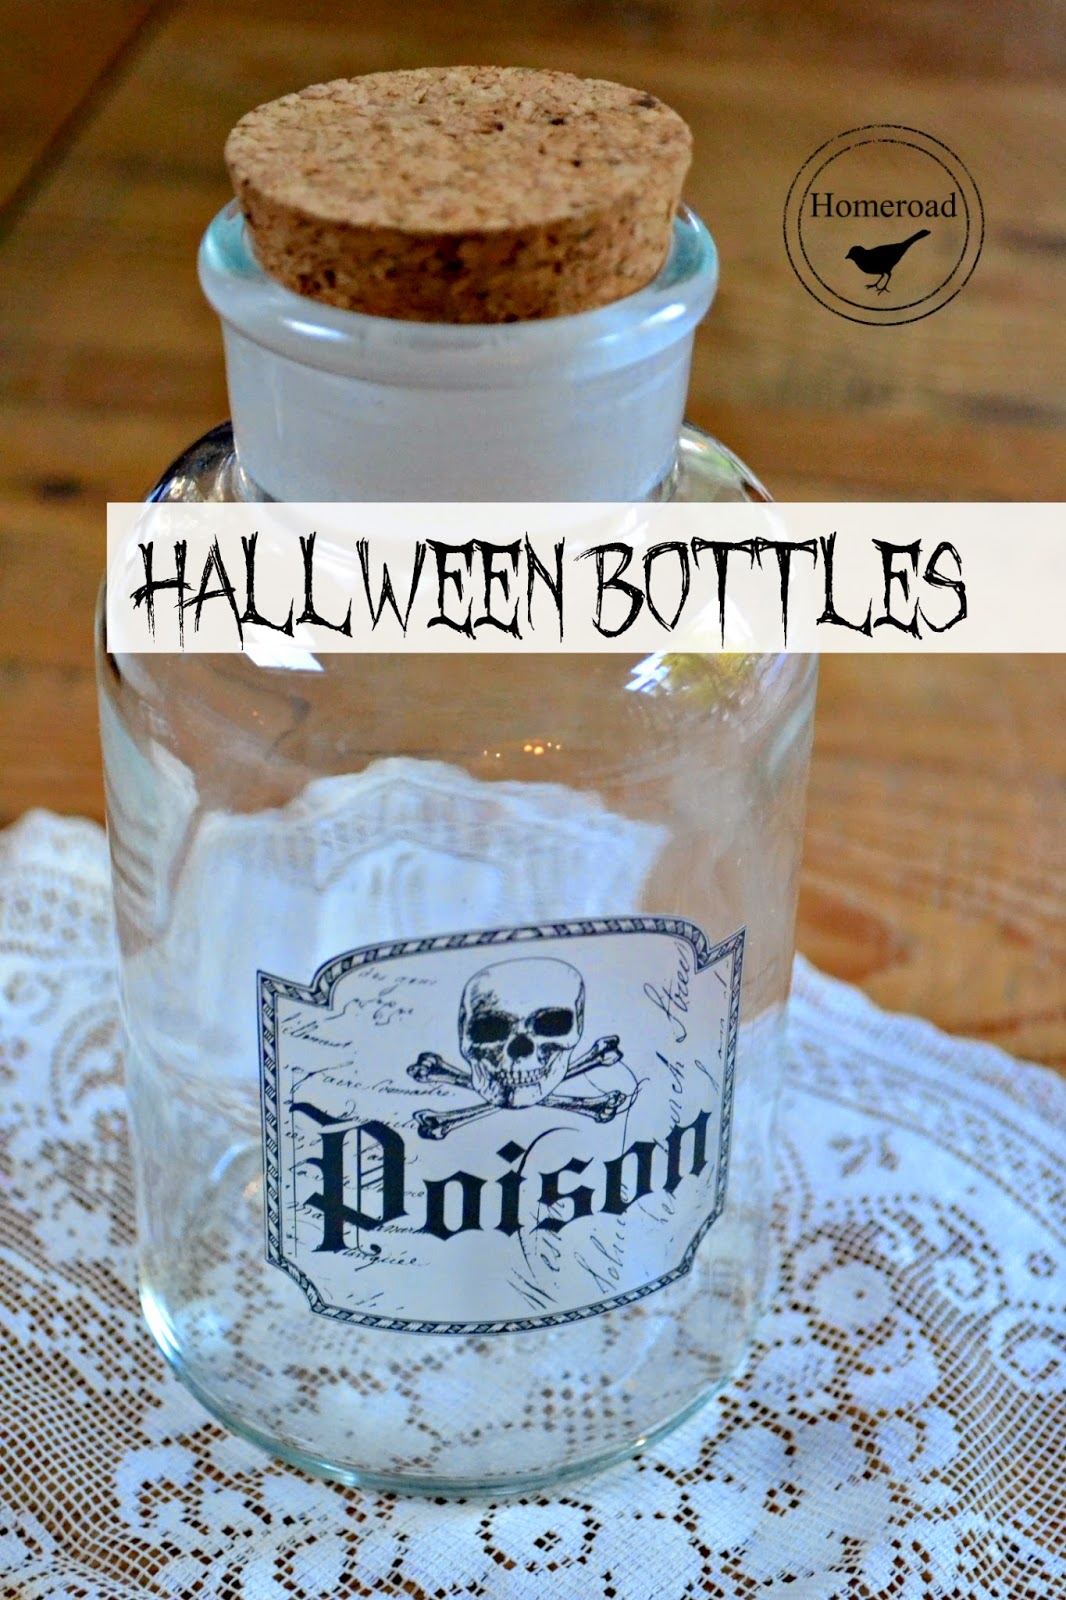 Halloween-elixir-bottles www.homeroad.net